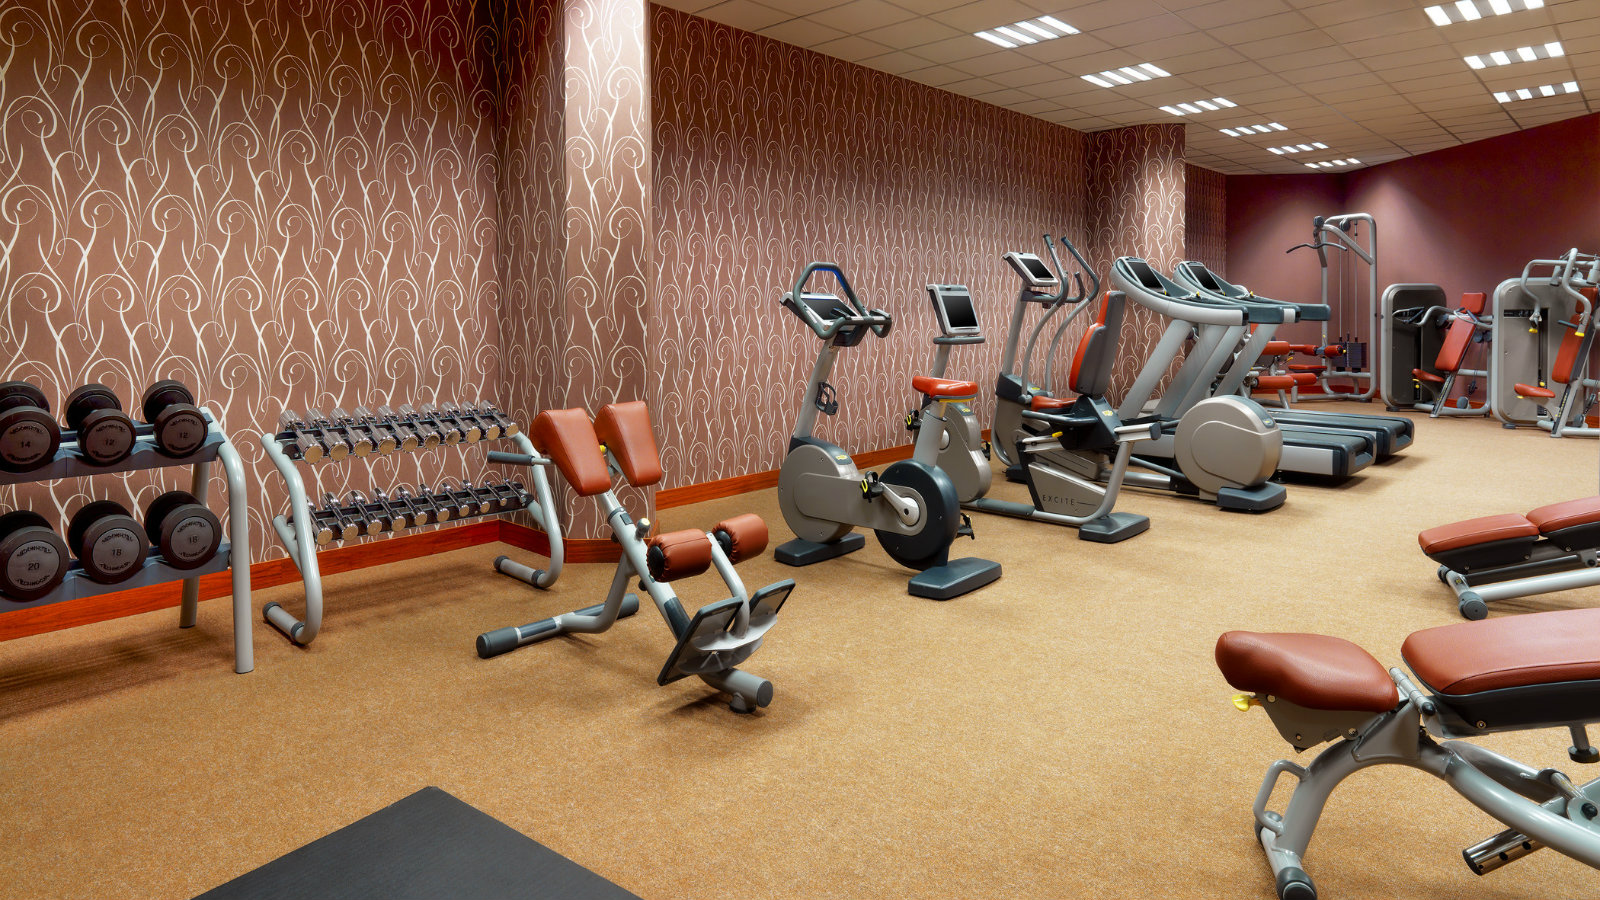 24-hour Sheraton Fitness for effective full-body workout at Sheraton Moscow Sheremetyevo